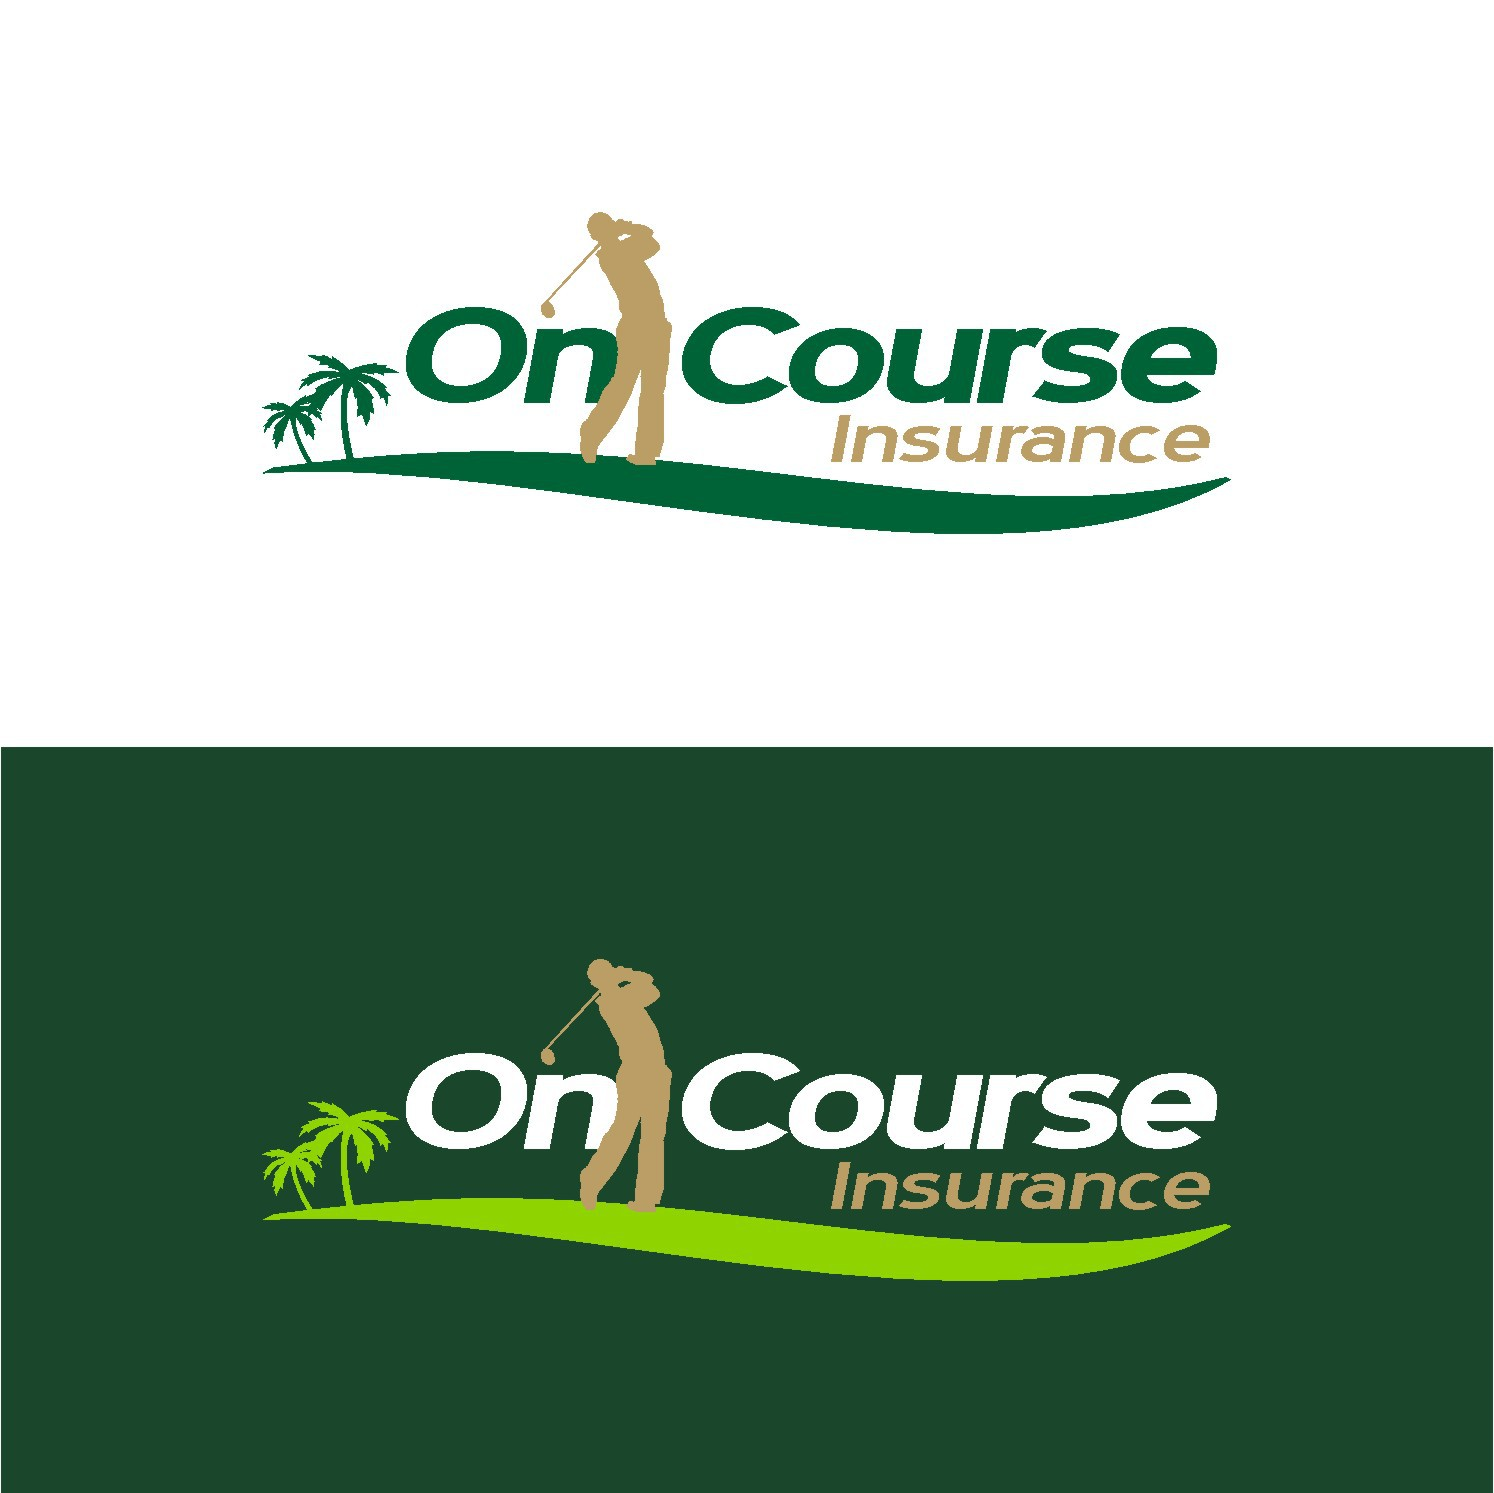 On Course Insurance needs a new logo